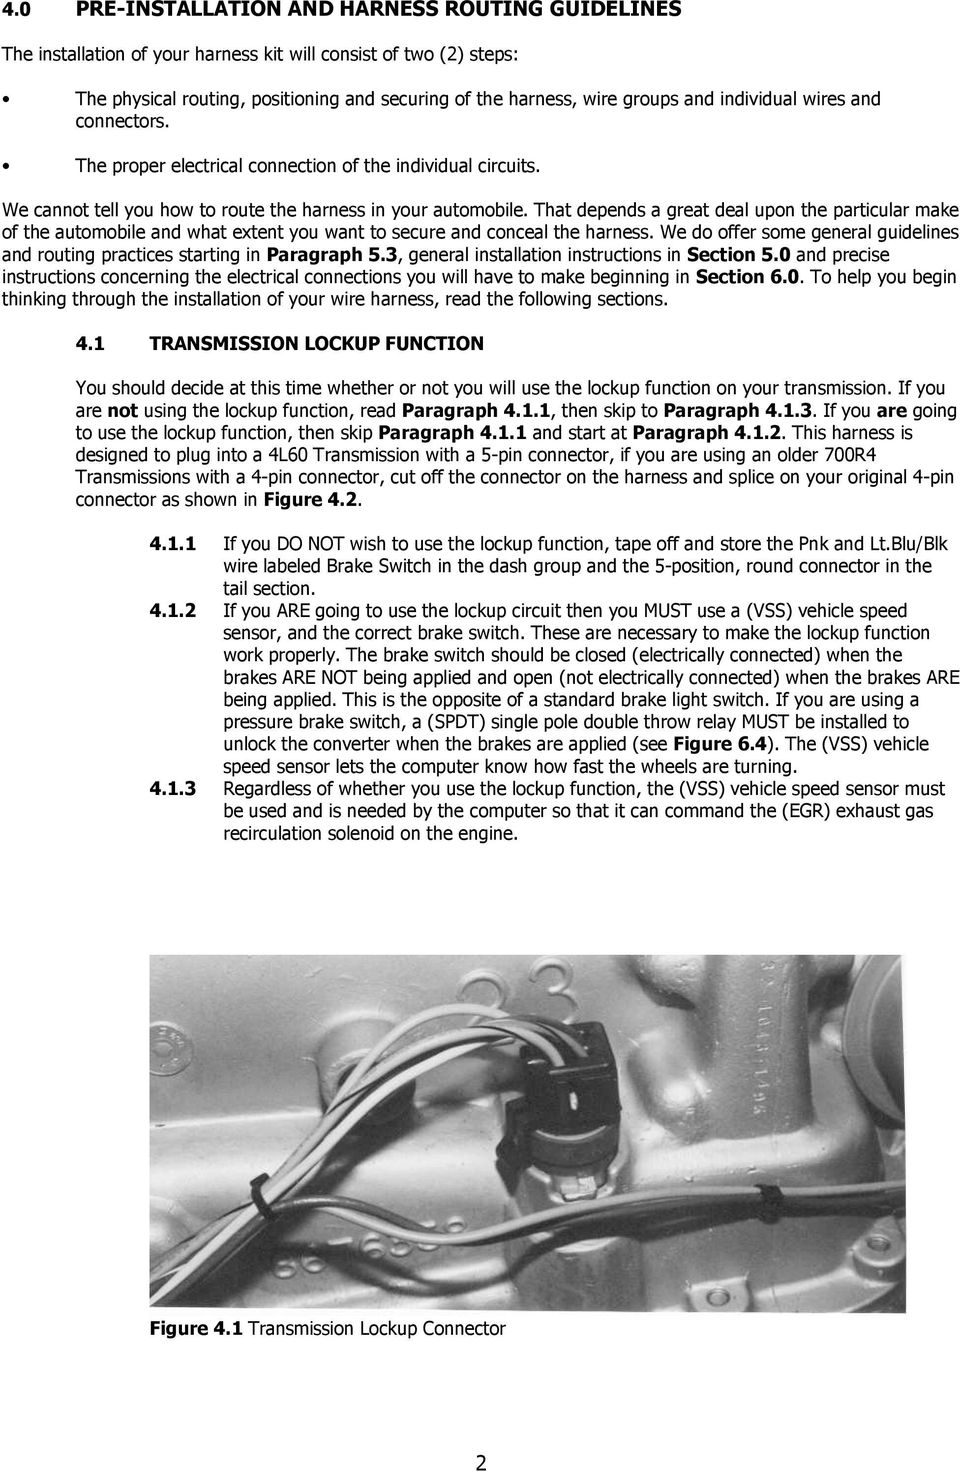 Wire Harness Installation Instructions Pdf Install Trailer Wiring Page 2 Figure 41 Transmission Lockup Connector That Depends A Great Deal Upon The Particular Make Of Automobile And What Extent You